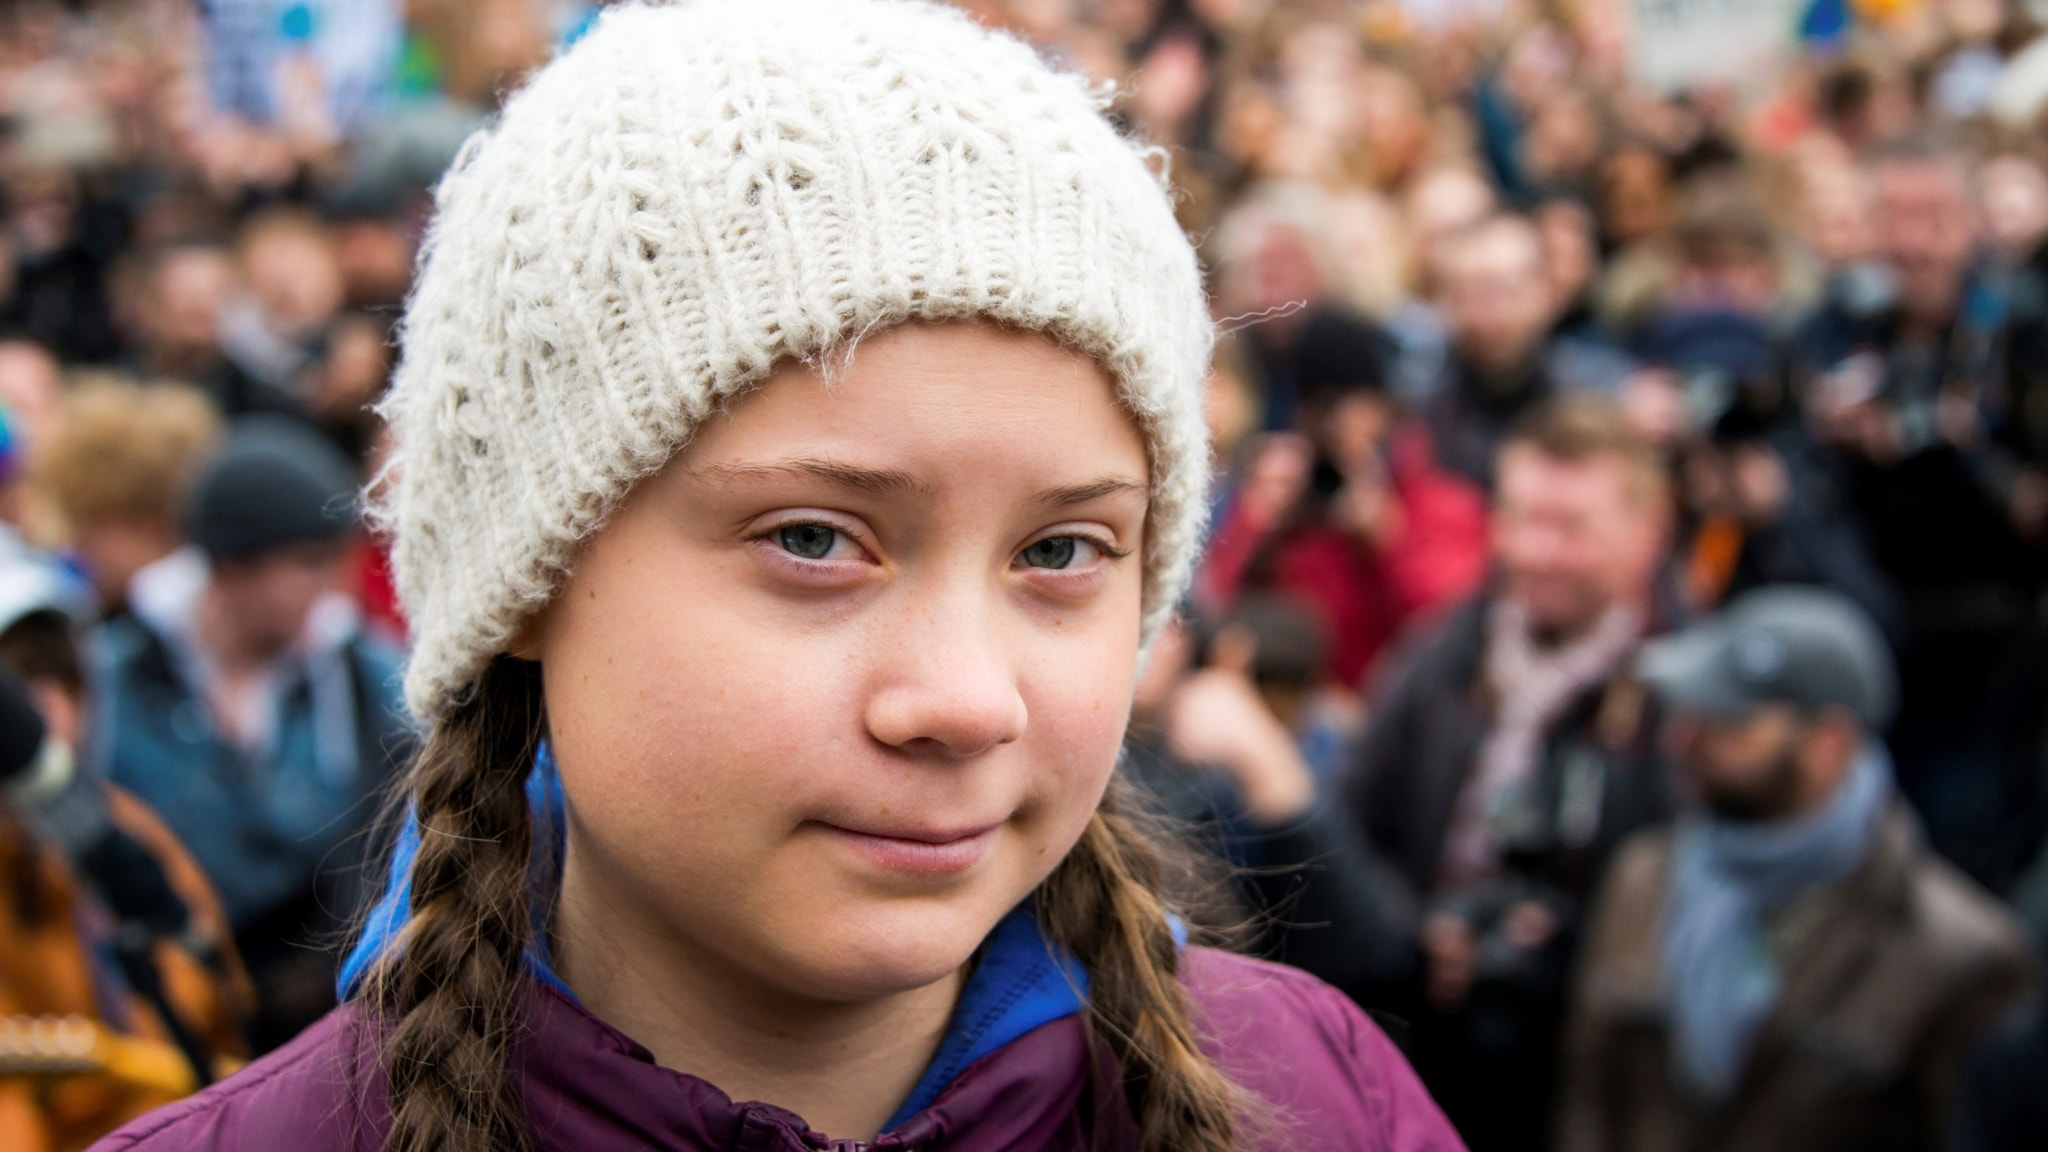 Girl in white bobble hat and braids in front of a big group of people (blurred).